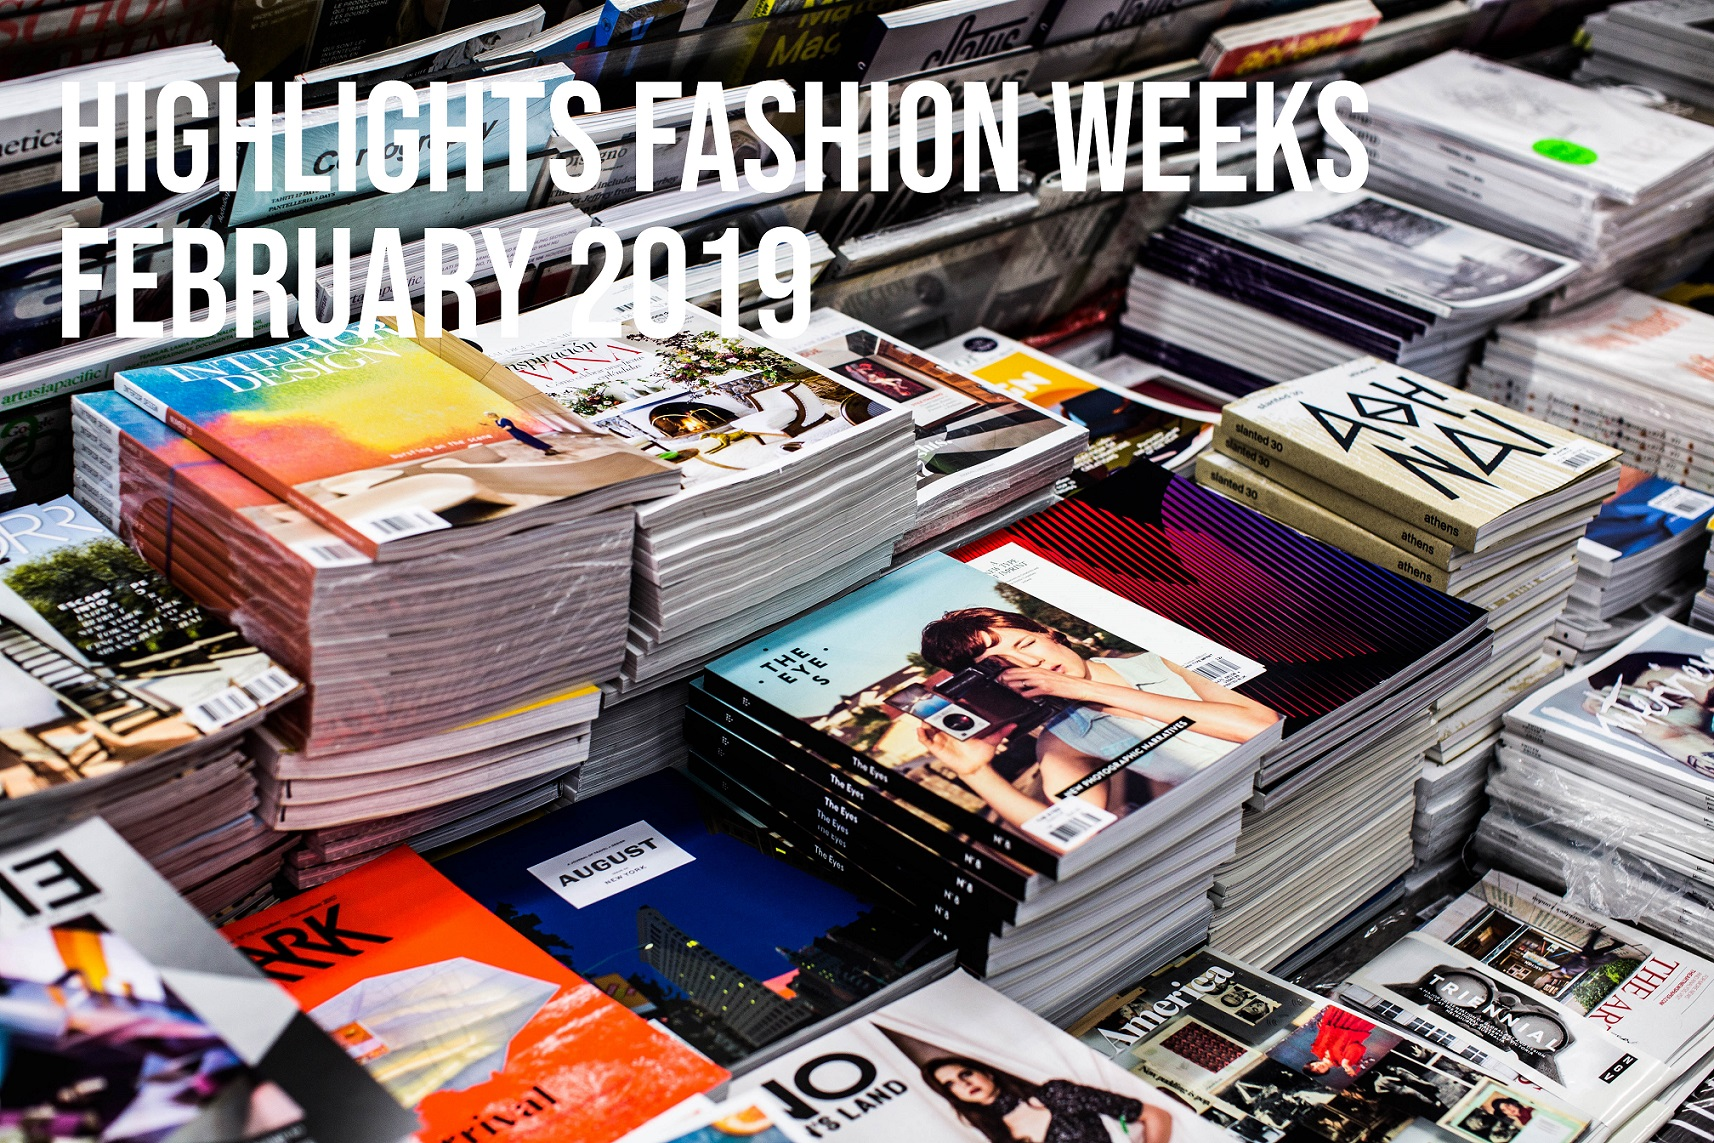 Highlights From The Fashion Weeks February 2019 – Part 2